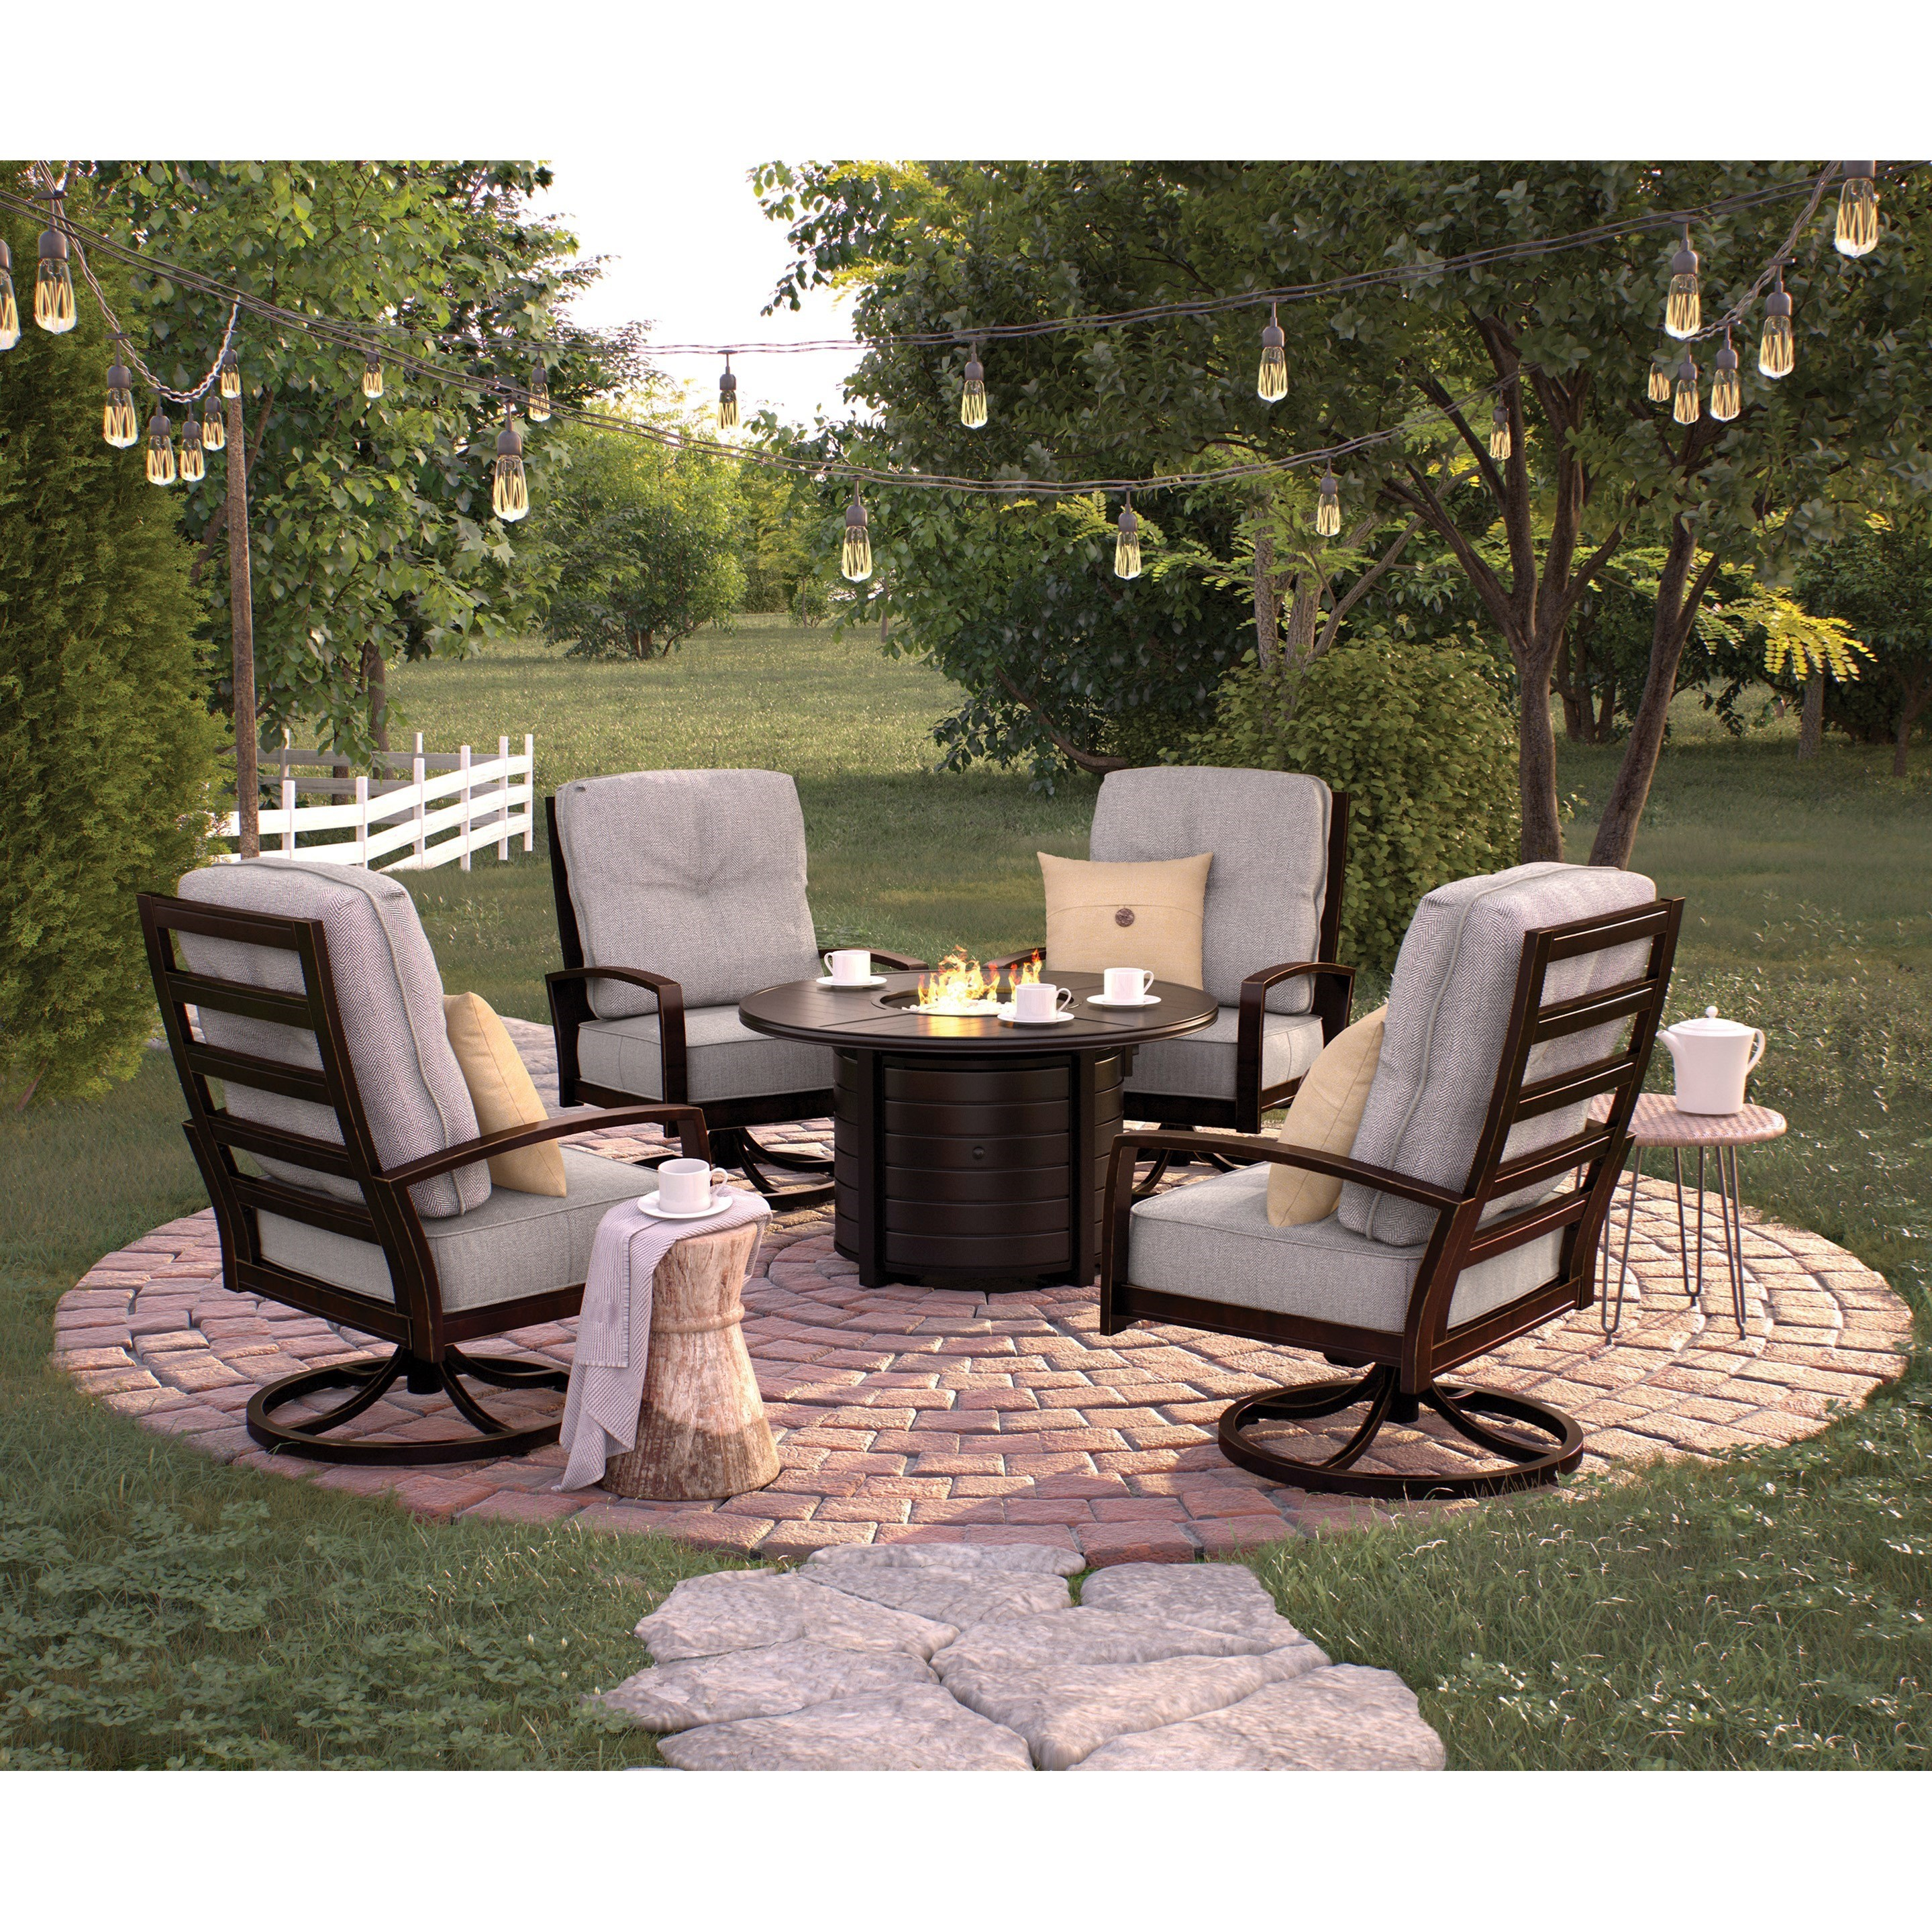 Signature Design by Ashley Castle Island Outdoor Conversation Set - Item Number: P414-776+4x821